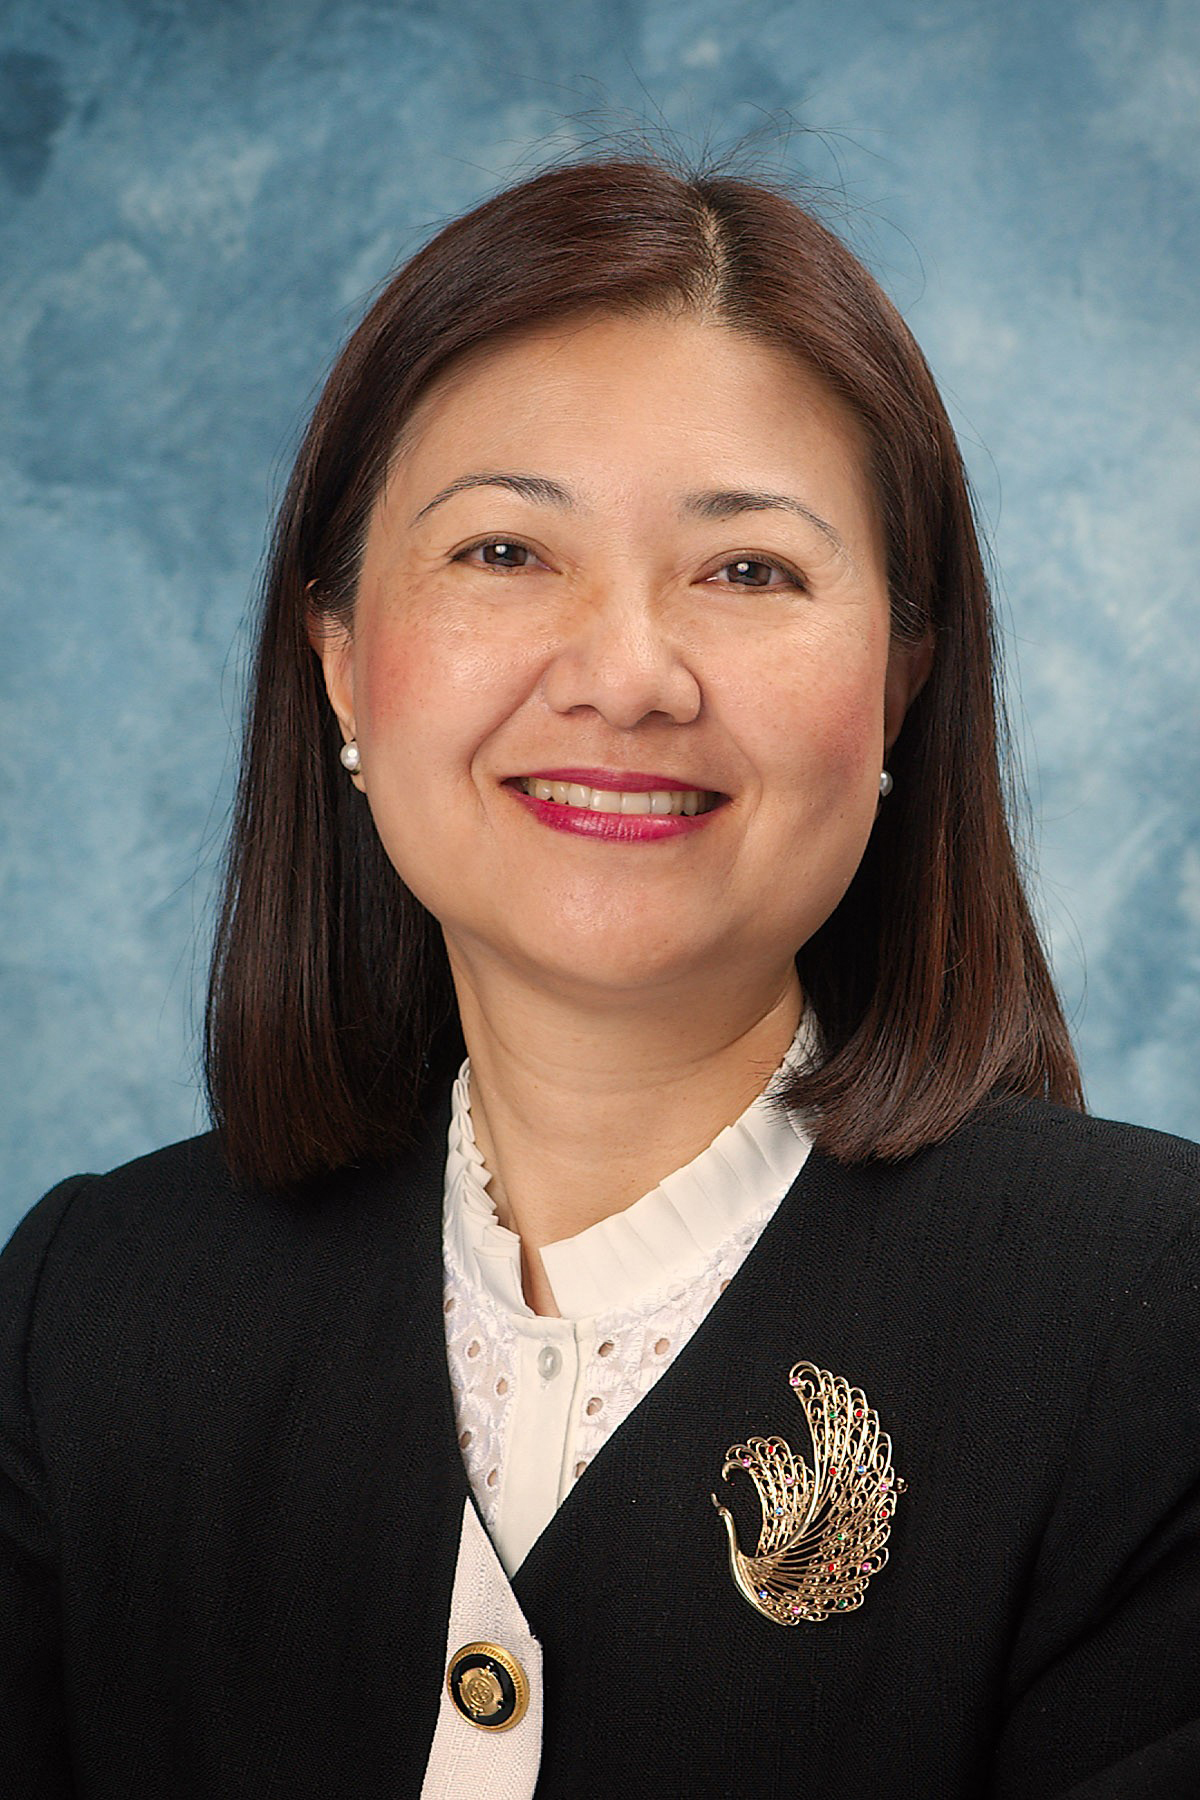 Patricia Hsieh